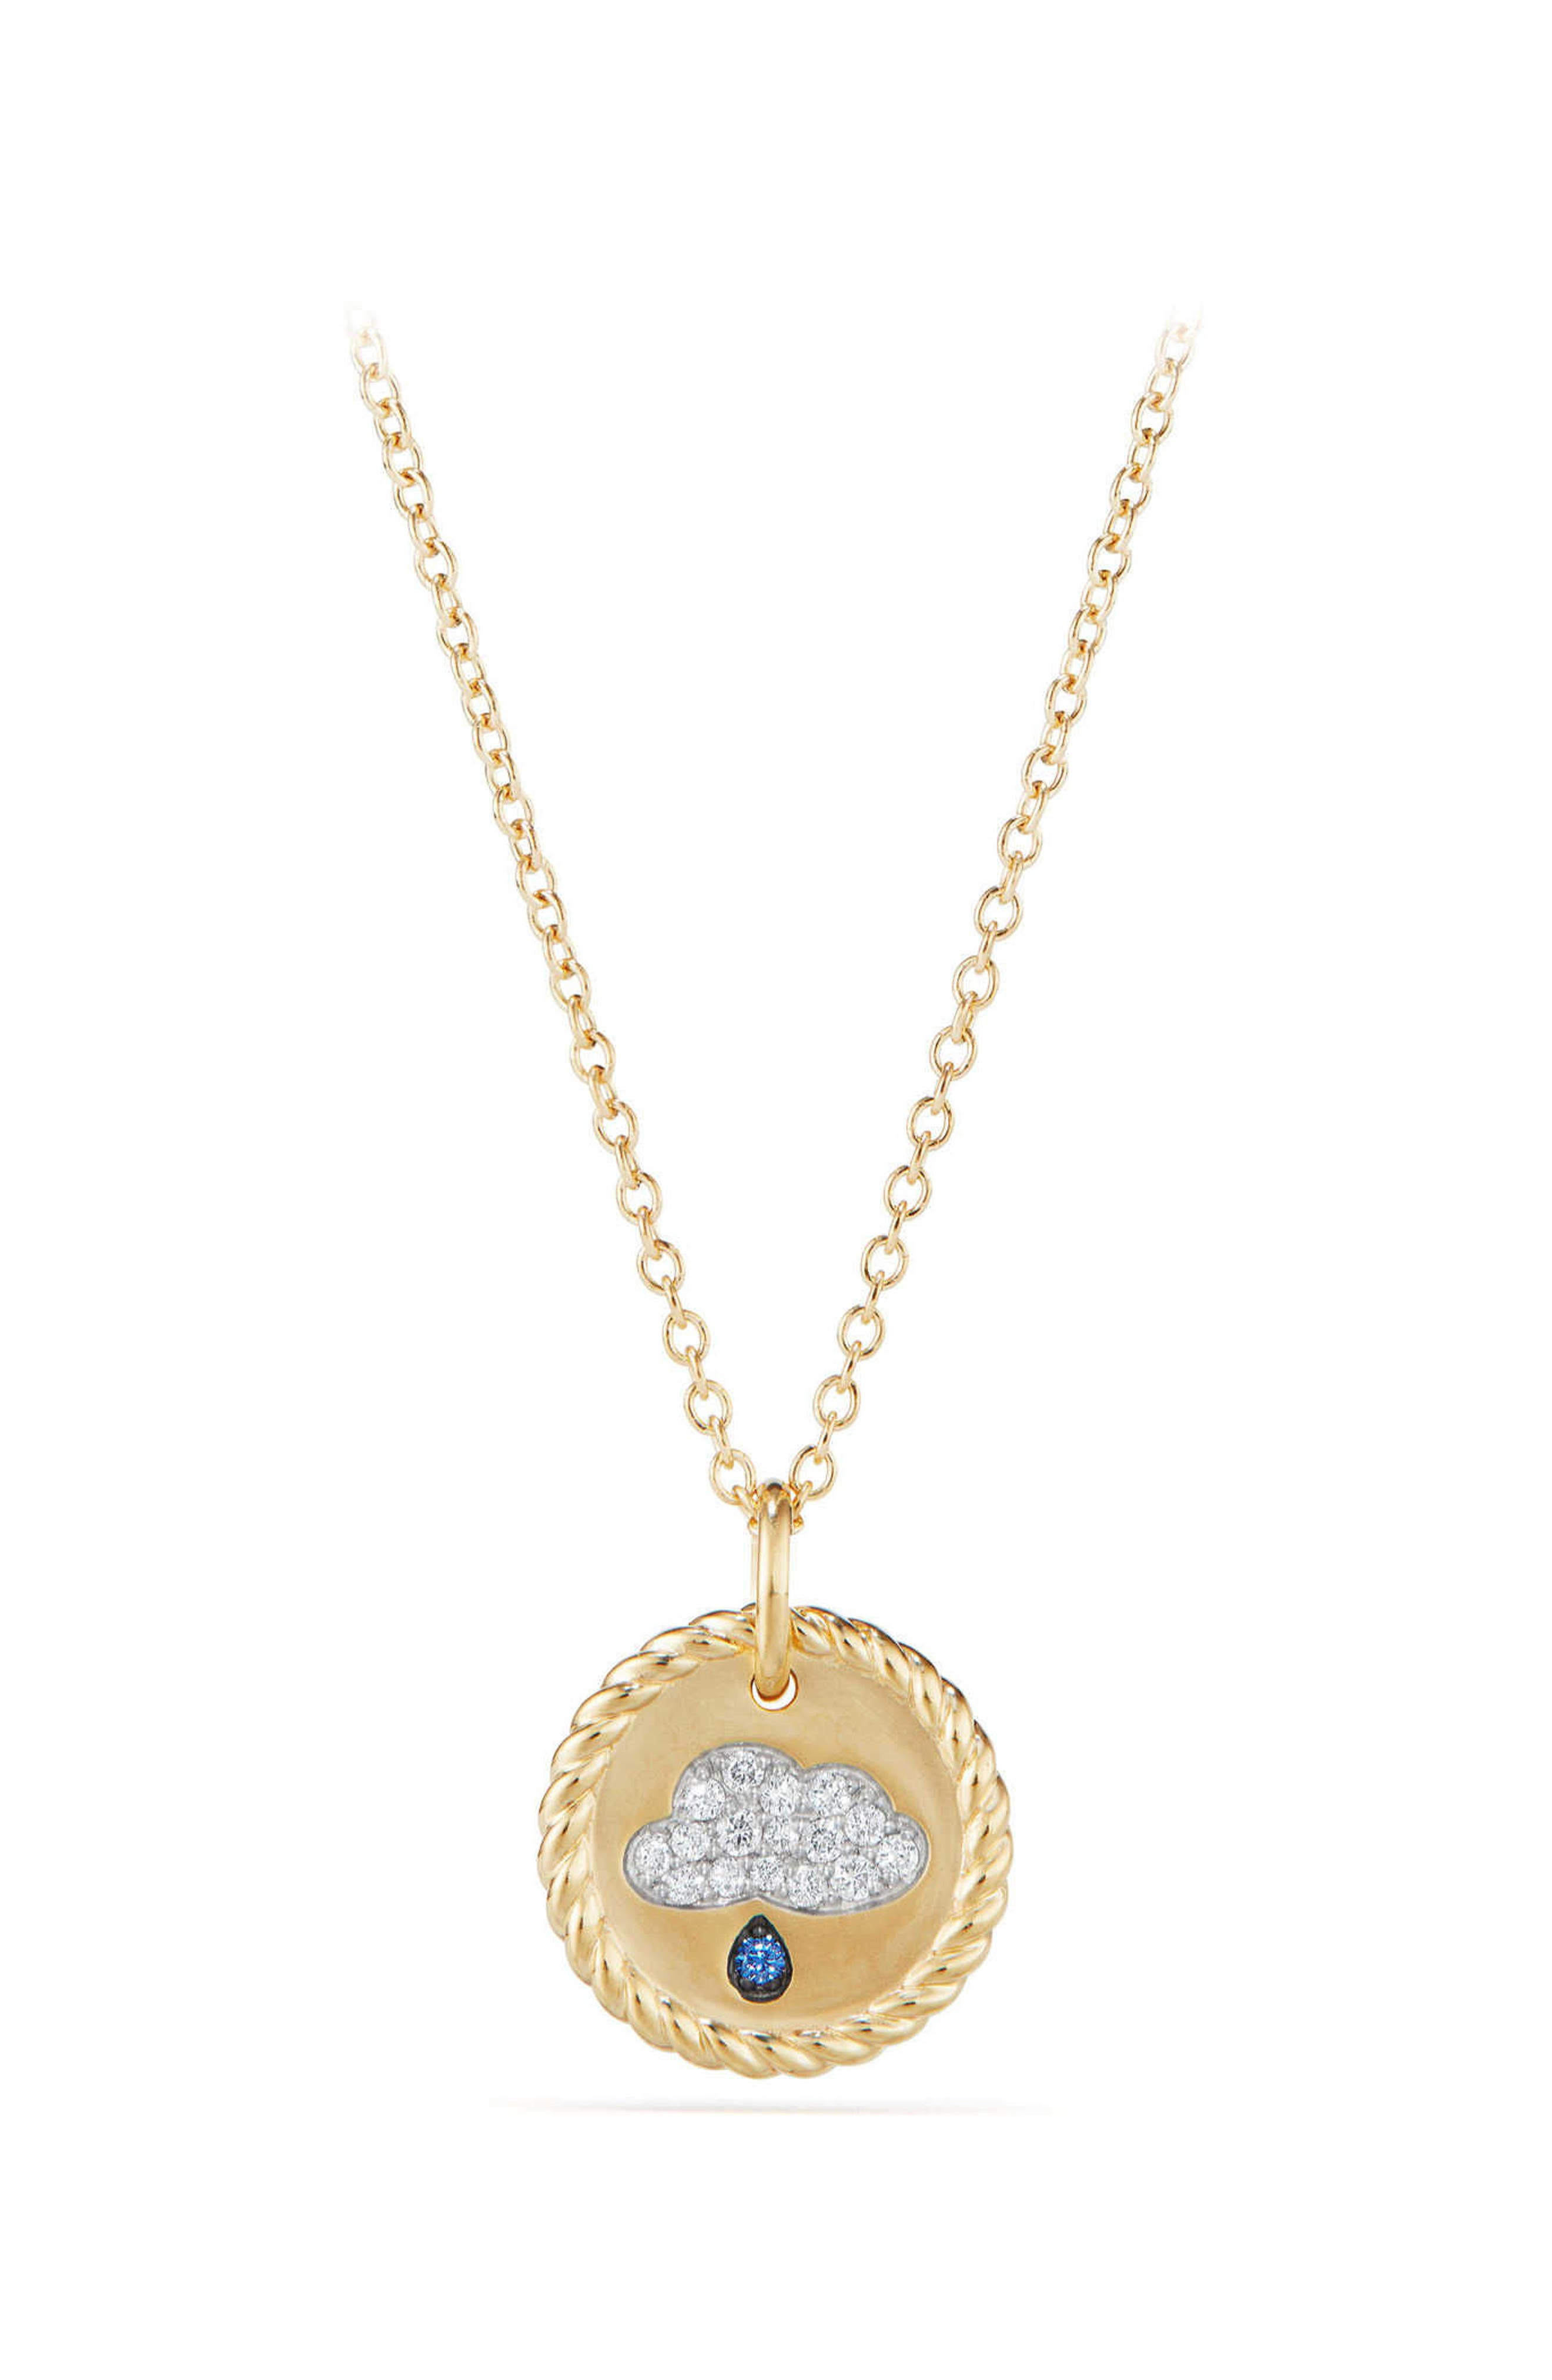 Cable Collectibles Raincloud Necklace with Diamonds & Light Blue Sapphires in 18K Gold,                             Main thumbnail 1, color,                             GOLD/ DIAMOND/ BLUE SAPPHIRE